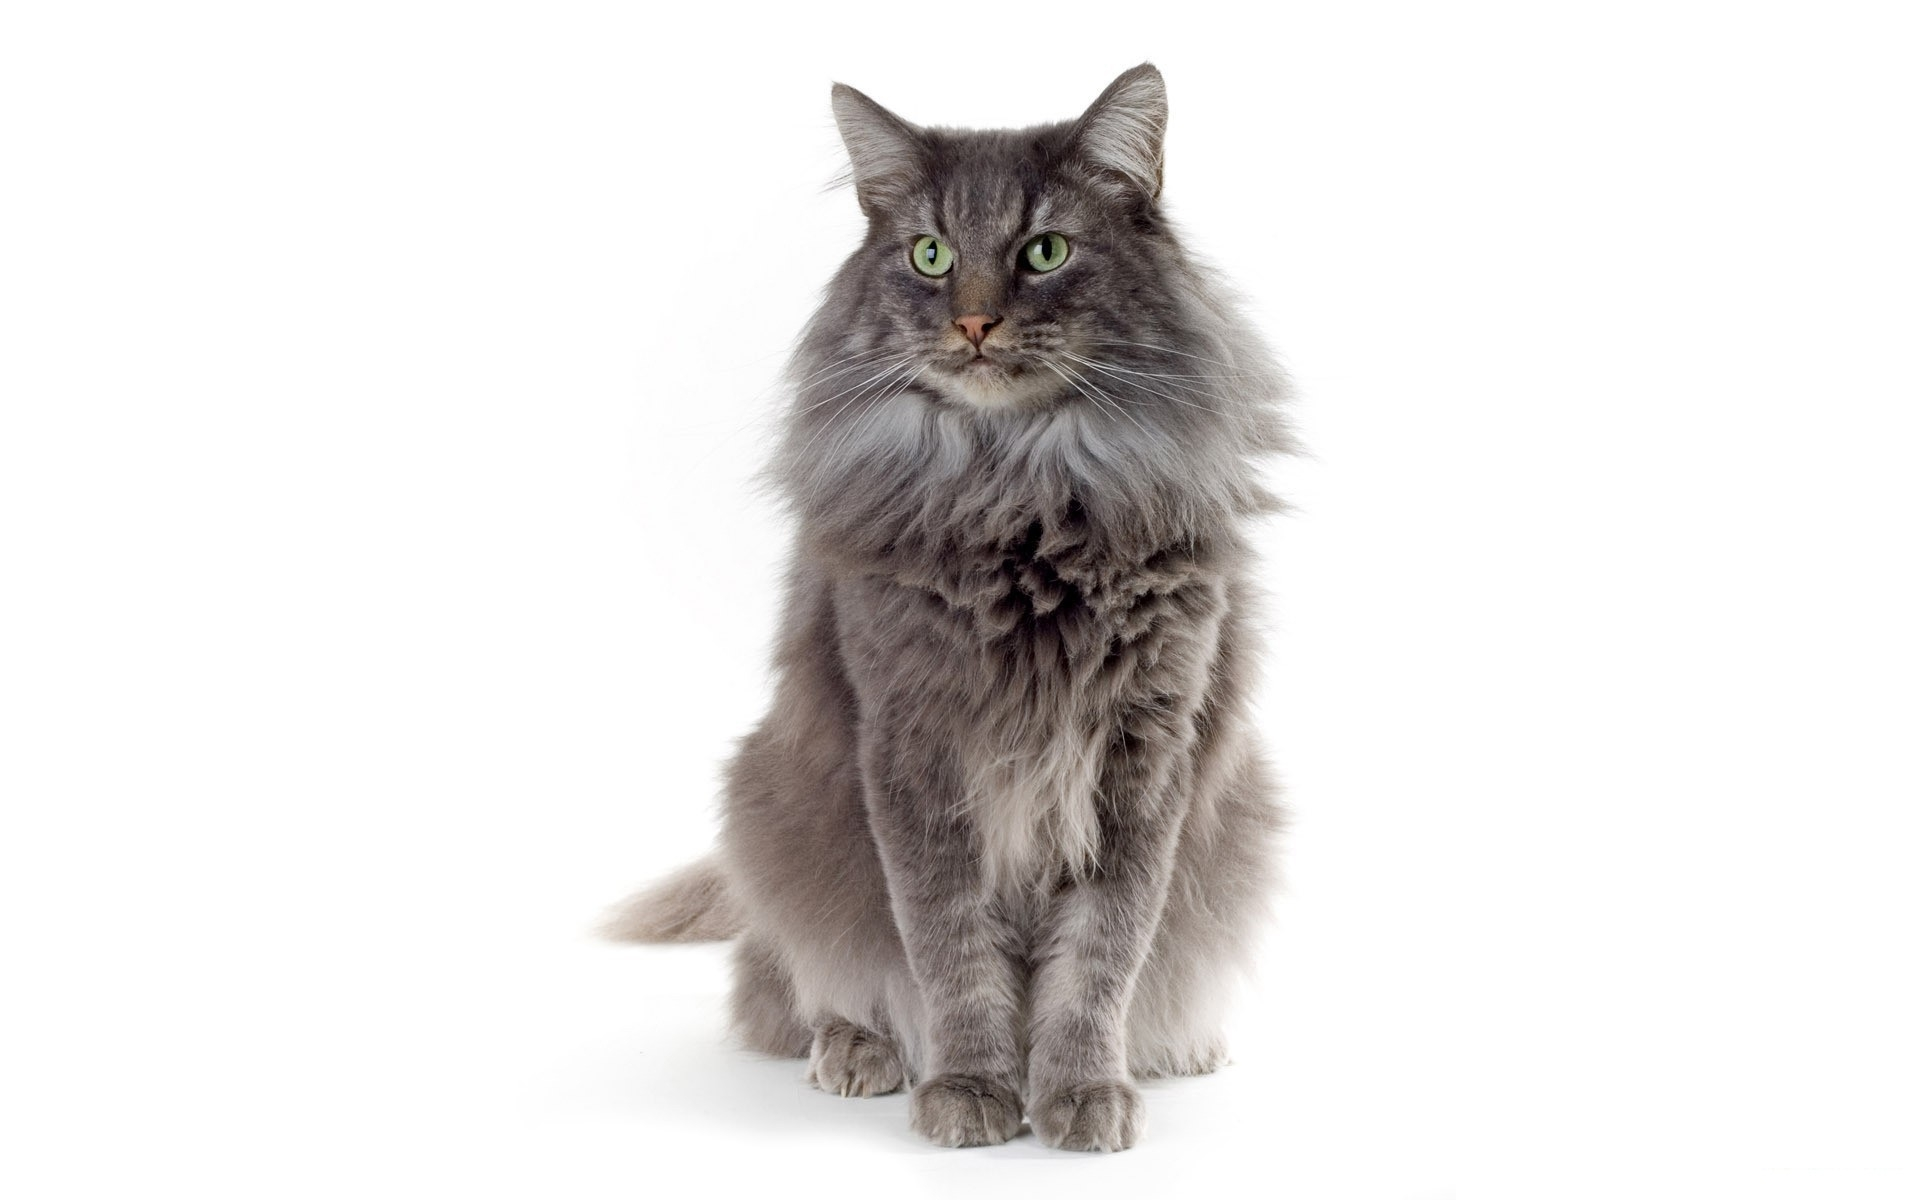 Cat Fluffy Color Sitting